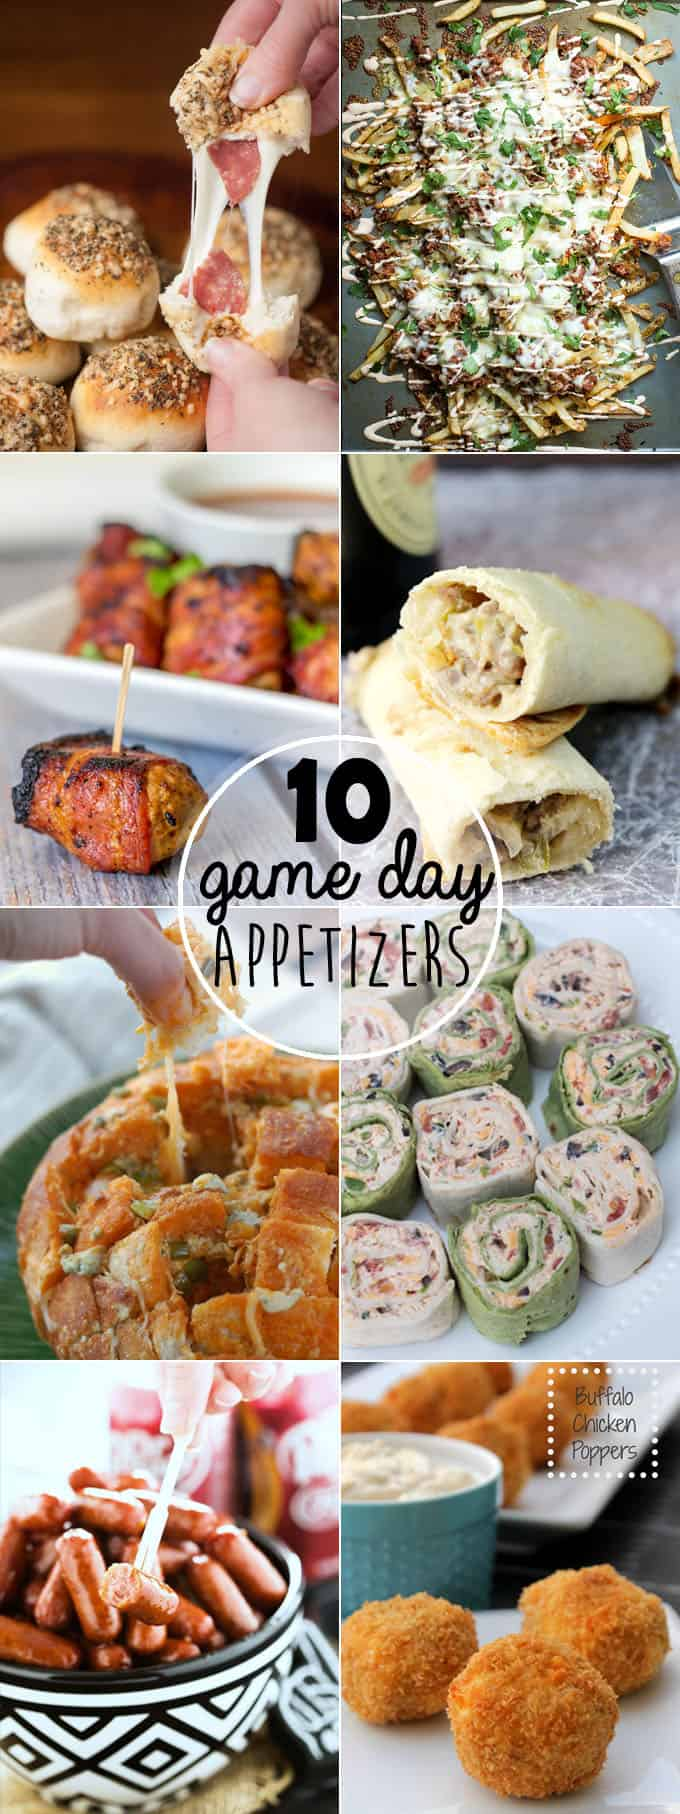 10 Game Day Appetizers For The Win // Tried and Tasty